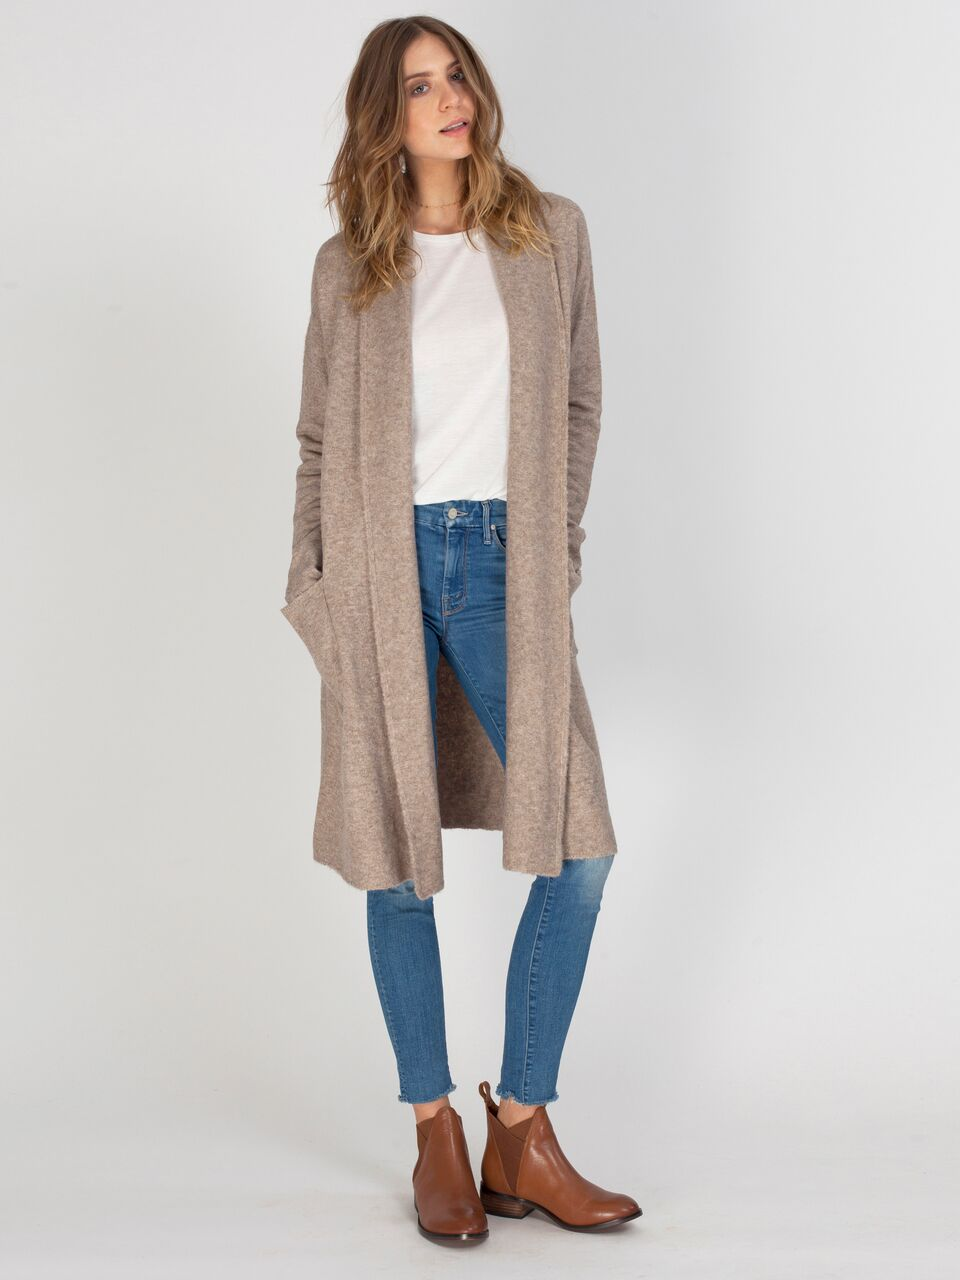 GF177-3691 TRINITY CARDIGAN - HEATHER CAMEL (1) - Copy.jpg